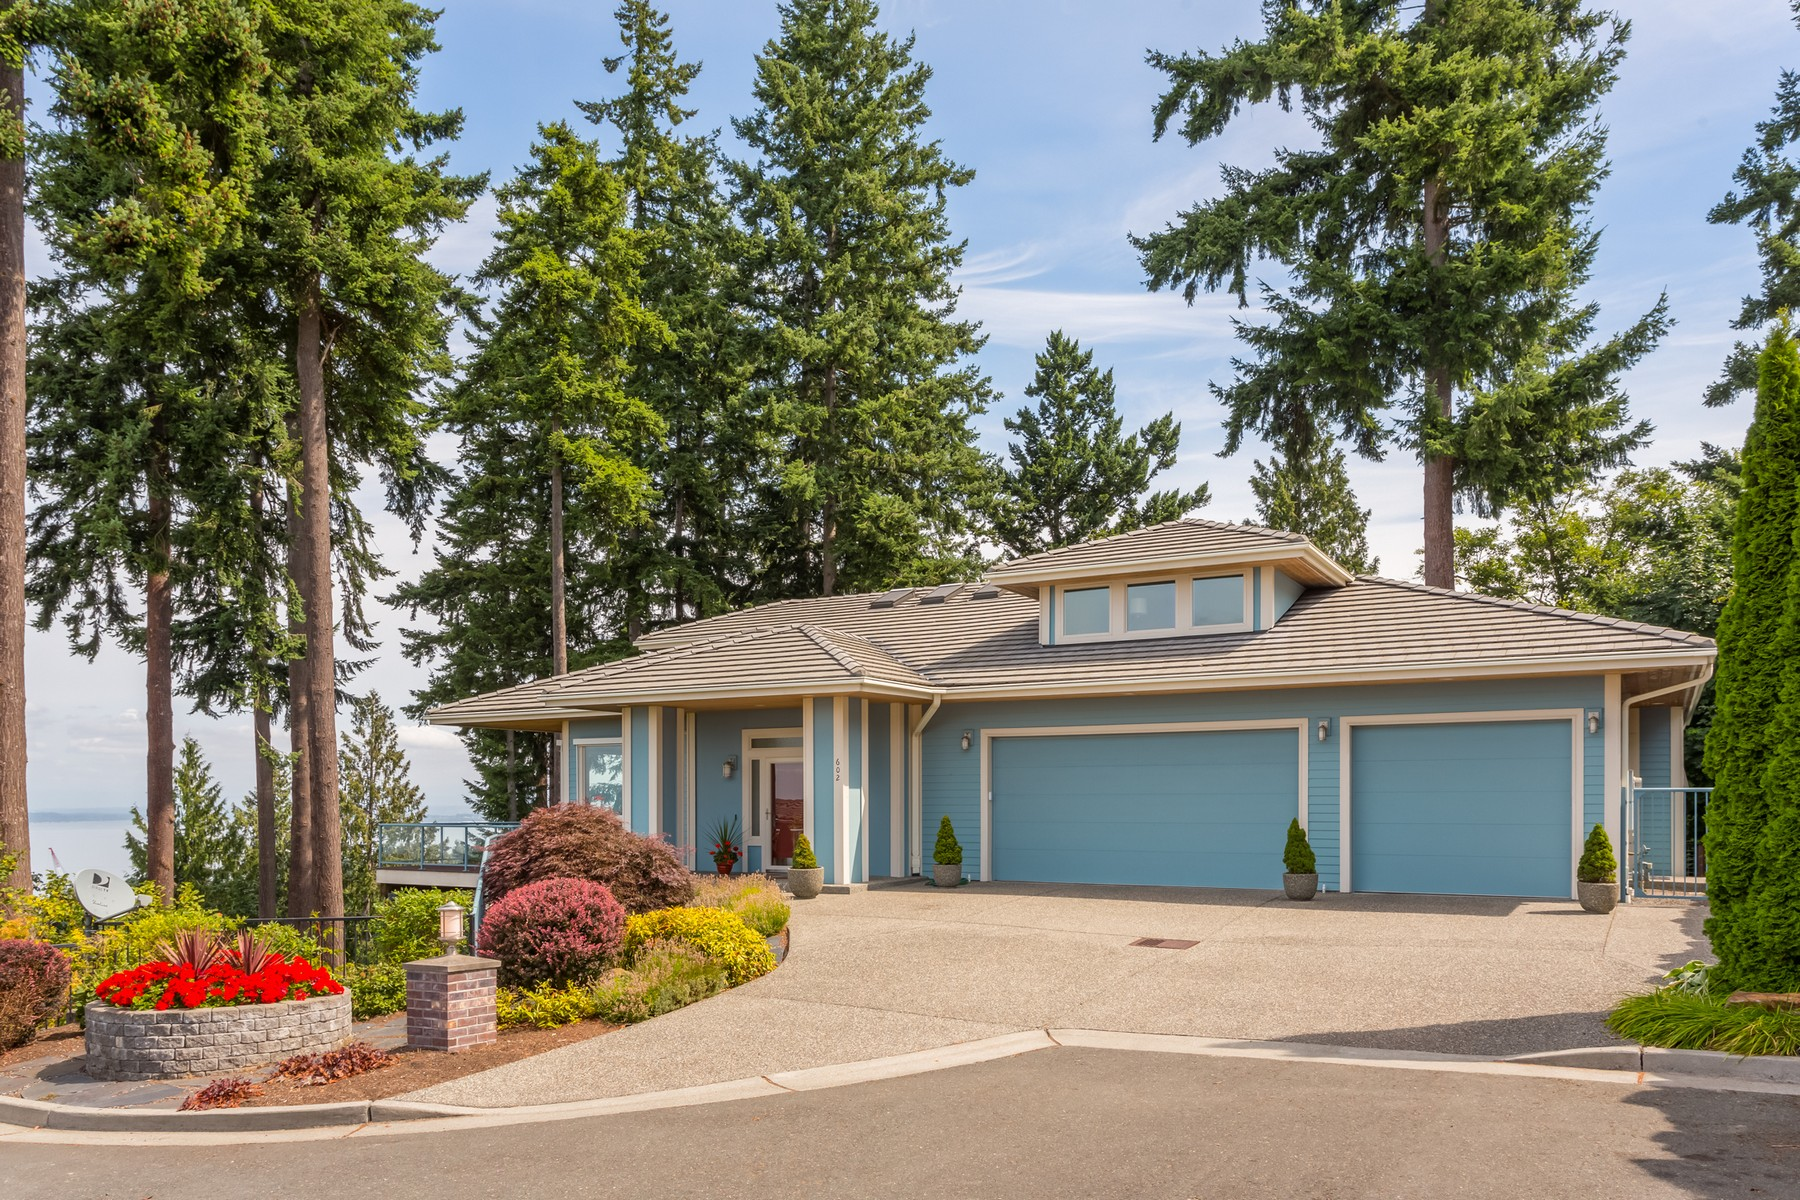 واحد منزل الأسرة للـ Sale في Custom Built Mukilteo Home 602 Loveland Ave Mukilteo, Washington, 98275 United States